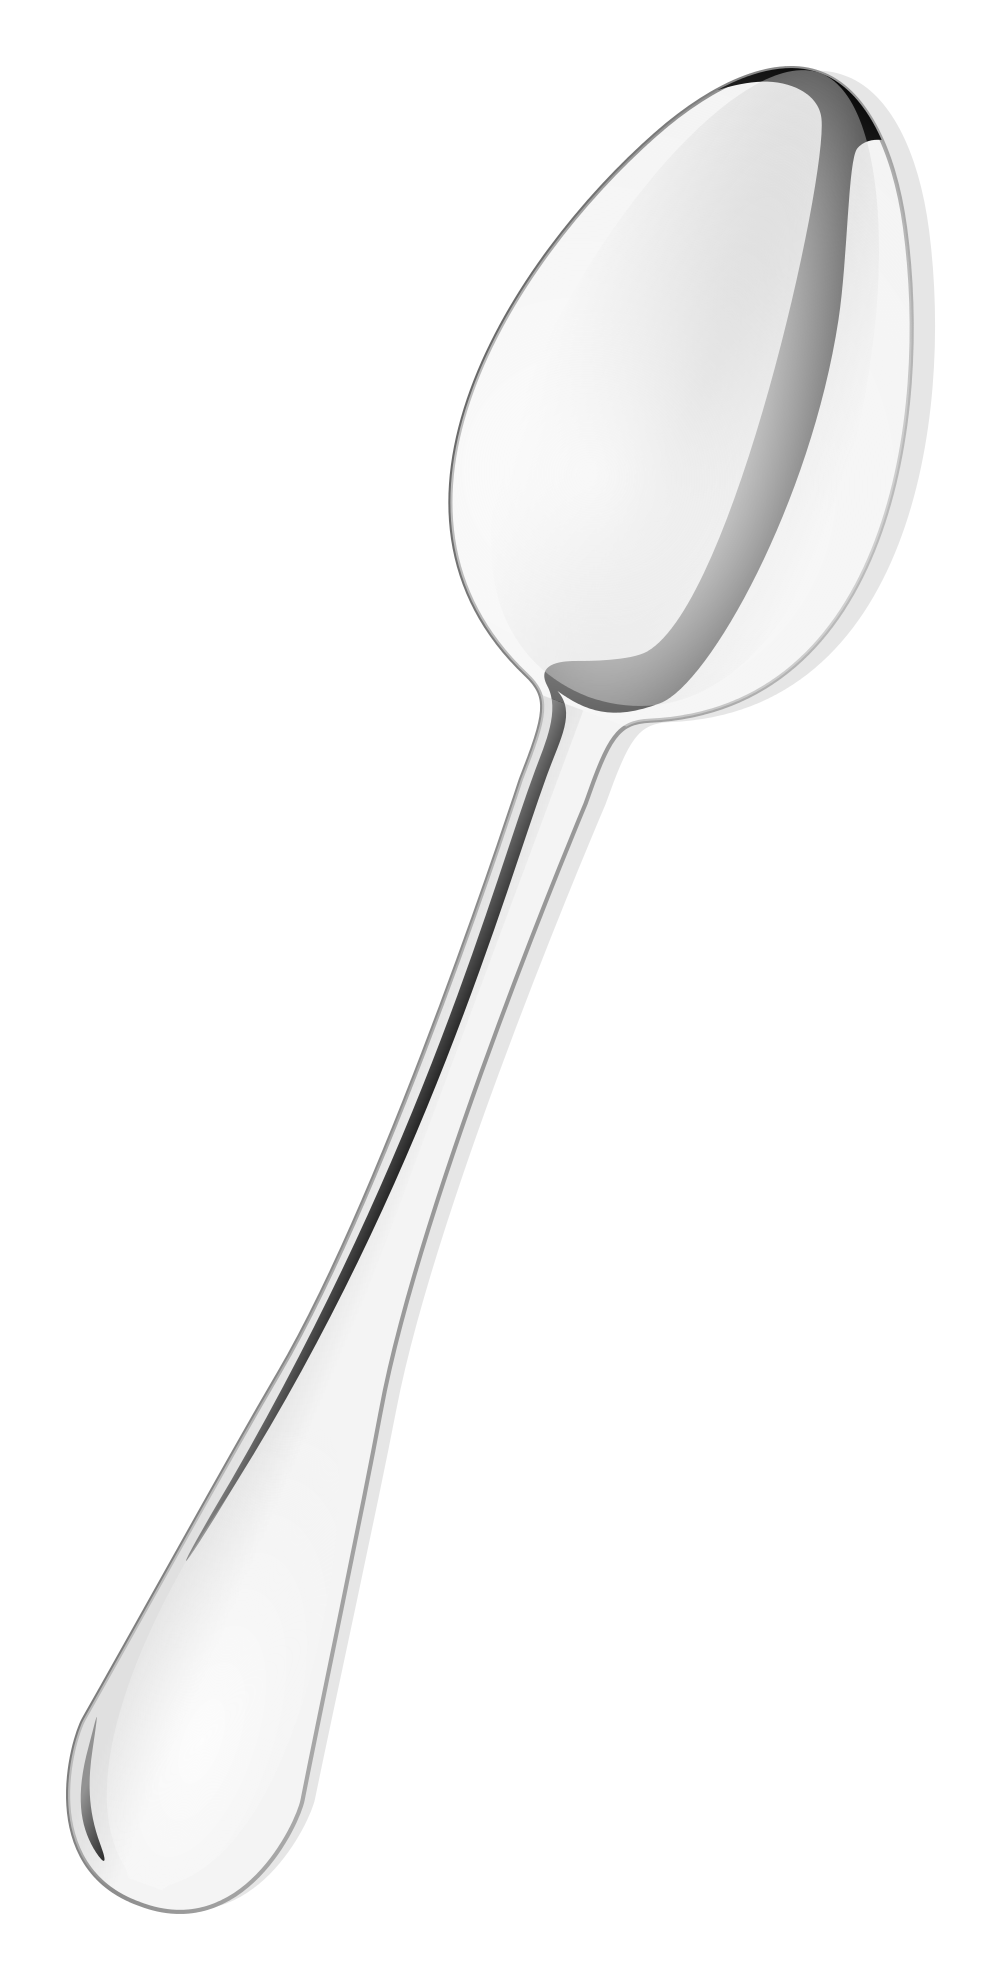 Spoon svg #383, Download drawings